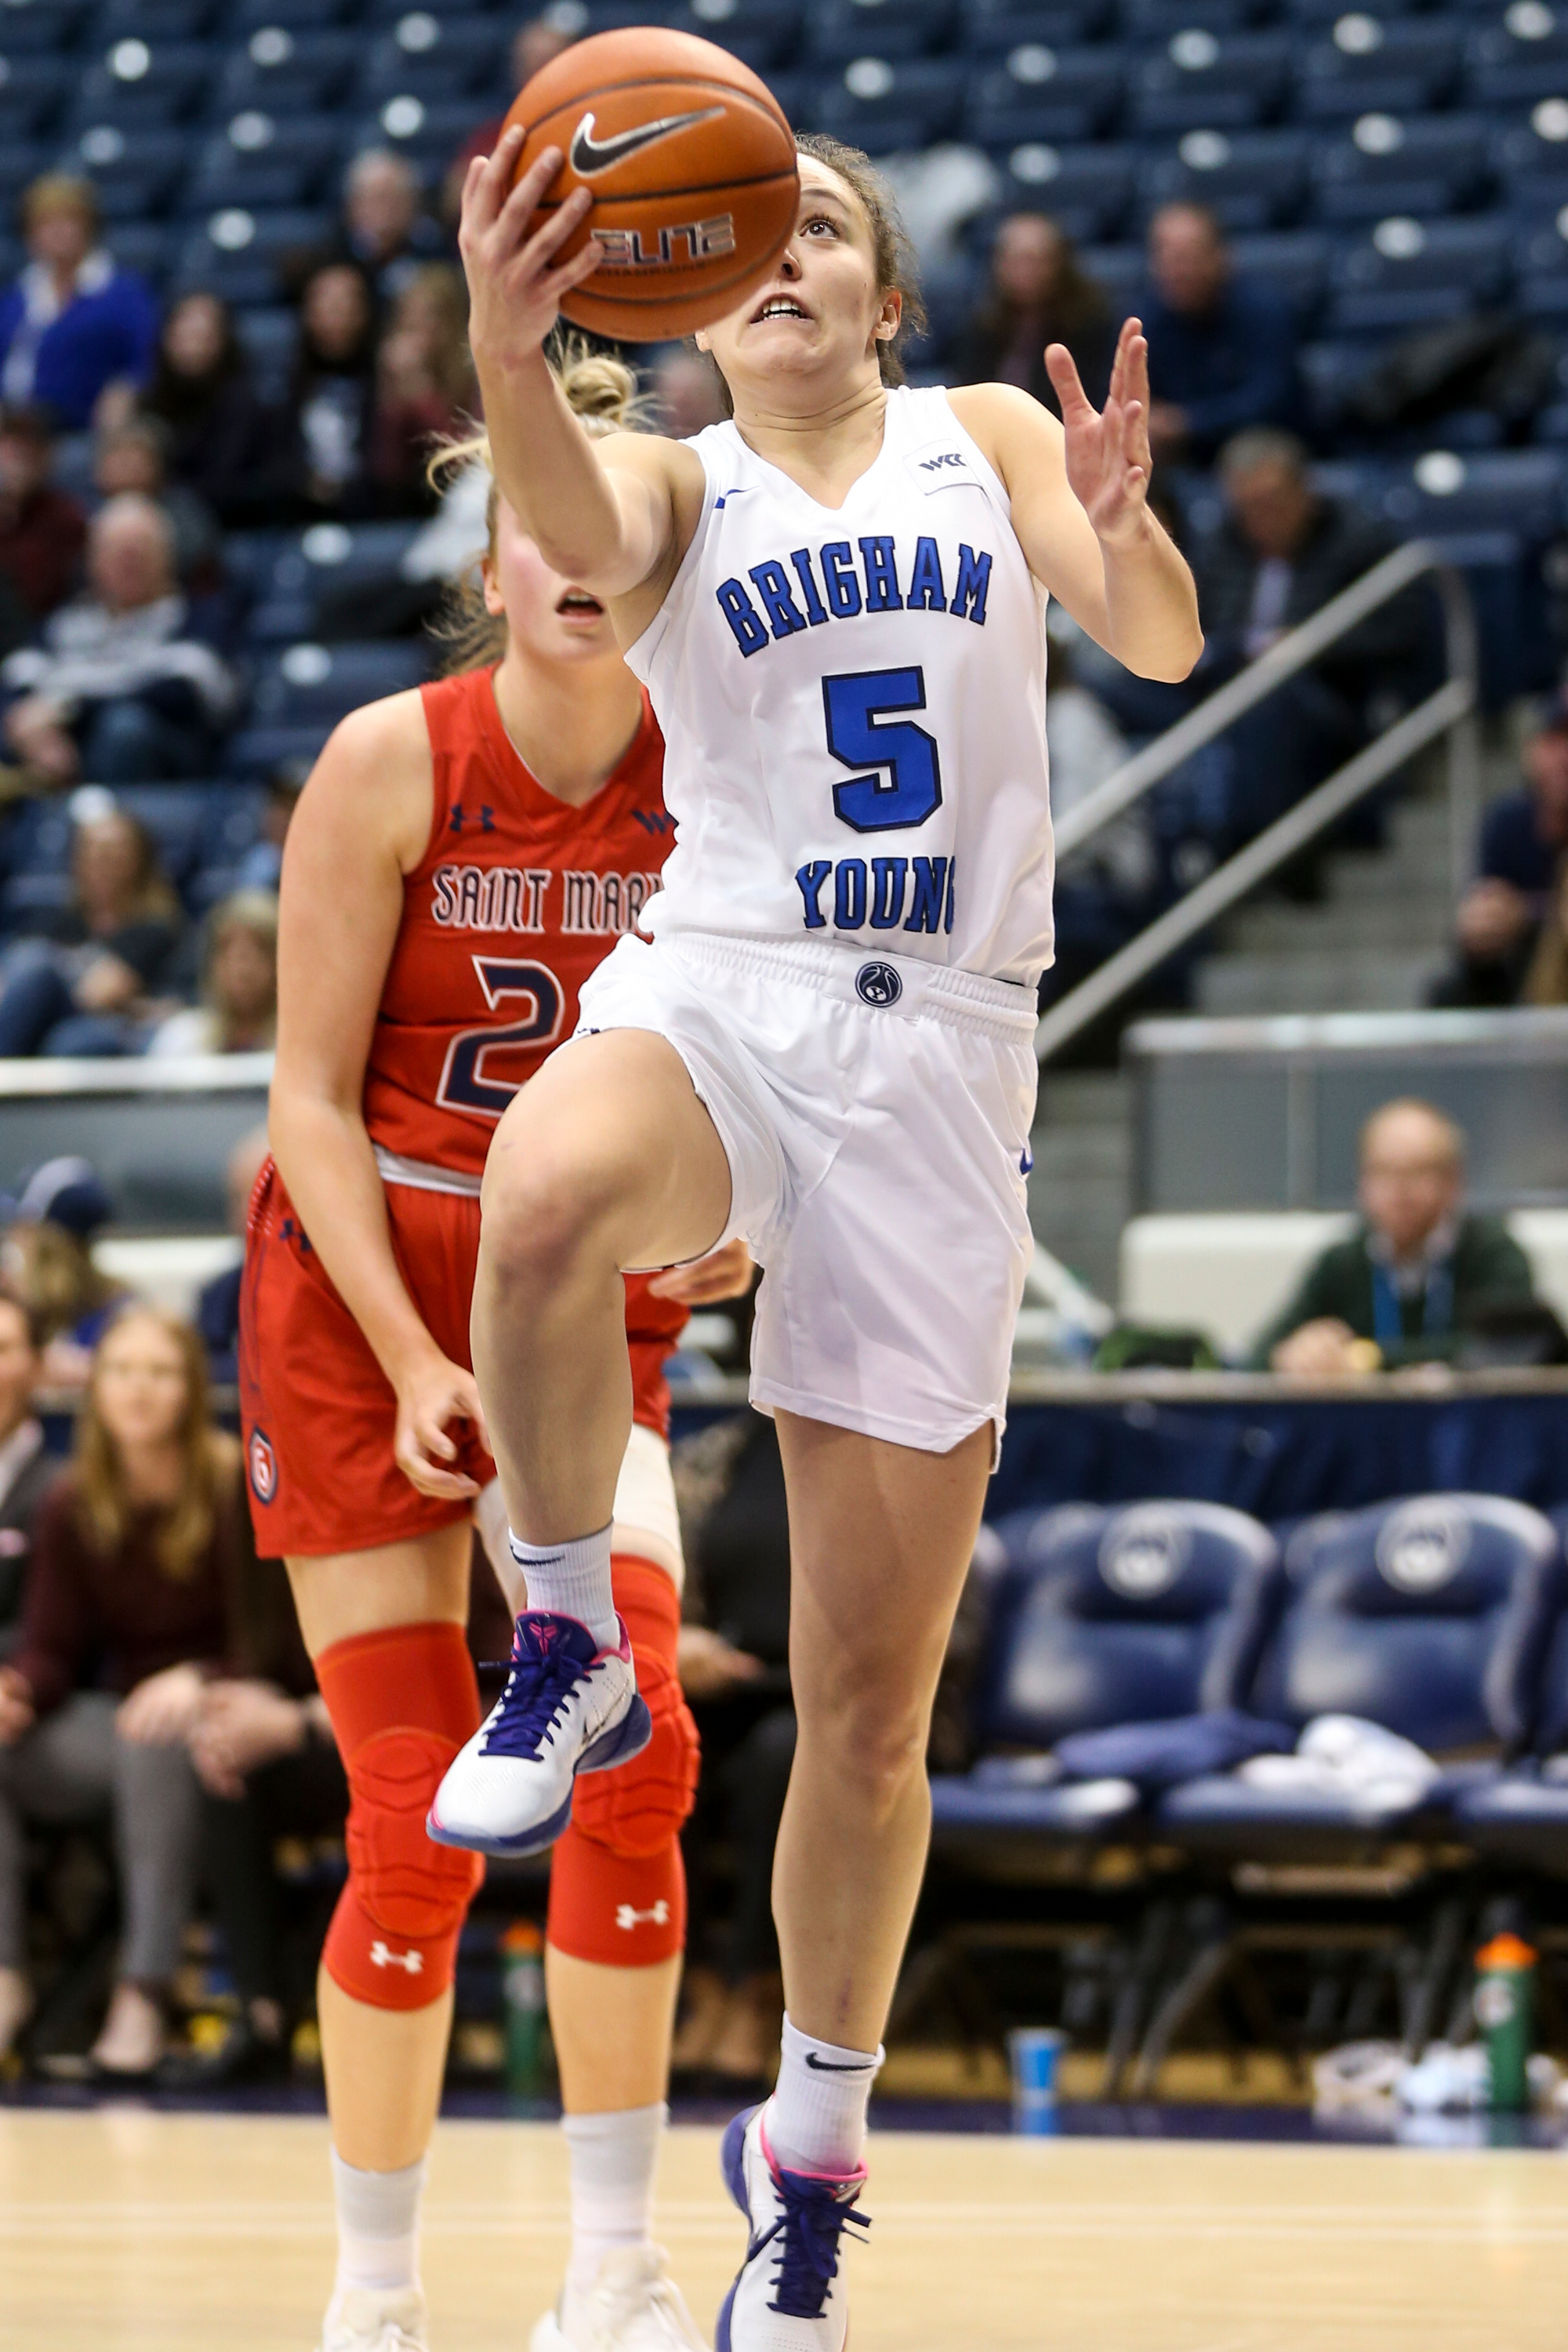 BYU Cougars guard Maria Albiero (5) goes for a layup against the Saint Mary's Gaels at the Marriott Center in Provo on Thursday, Feb. 13, 2020.